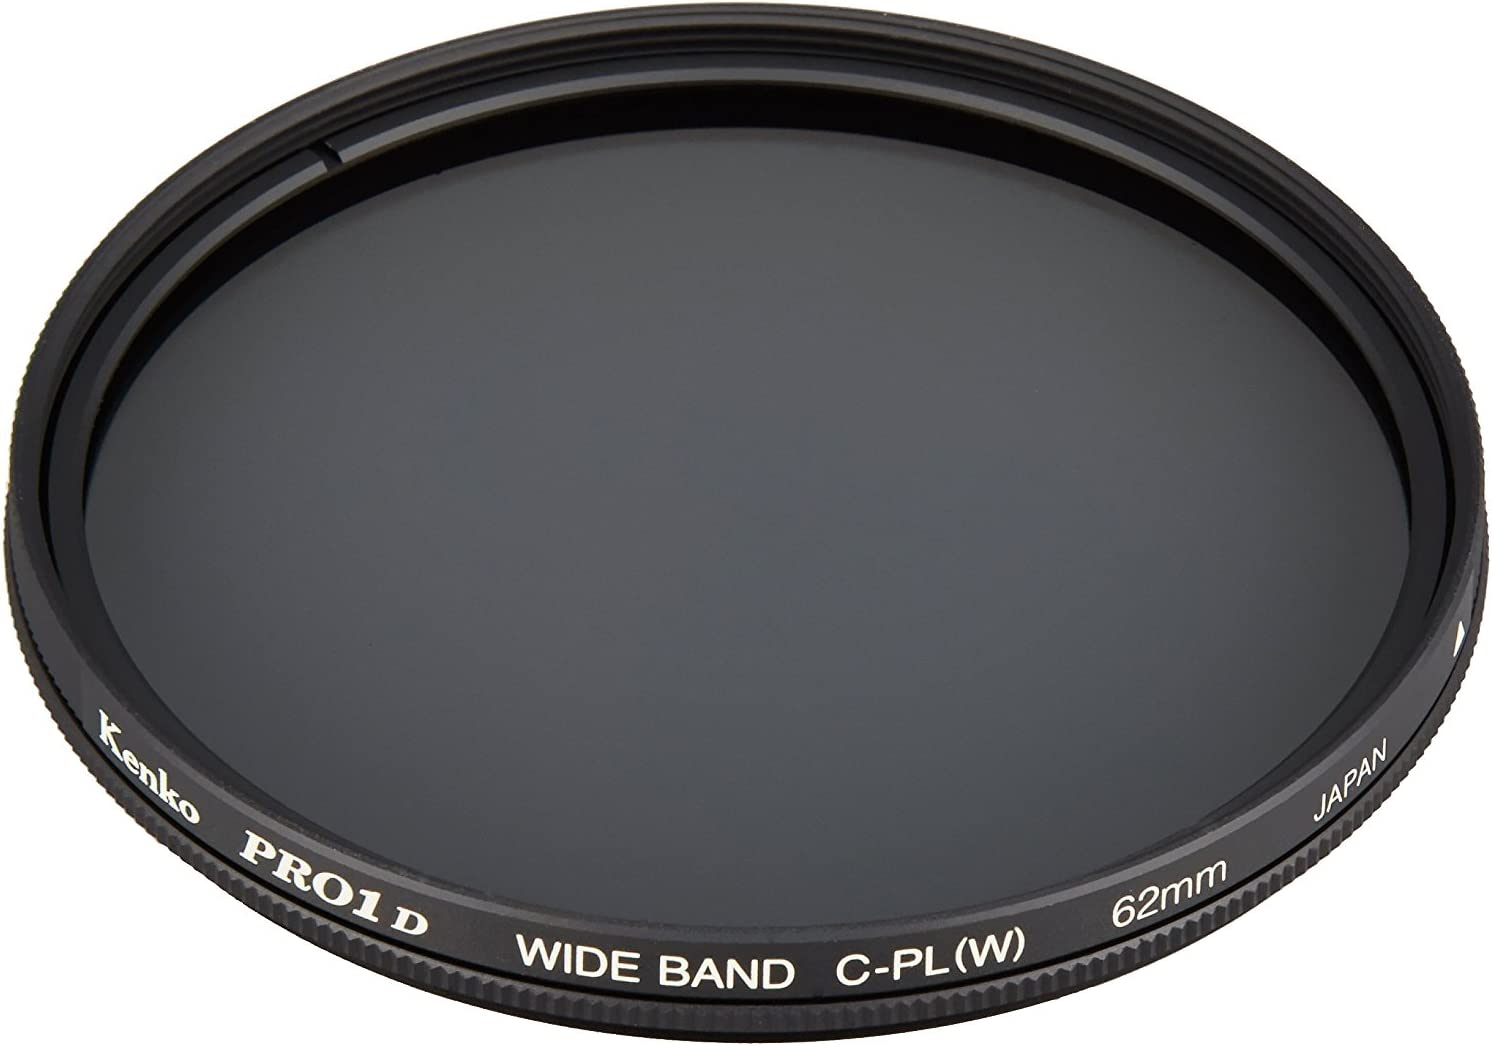 Kenko 58mm Zeta EX C-PL ZR-Coated Super Slim Frame Camera Lens Filters